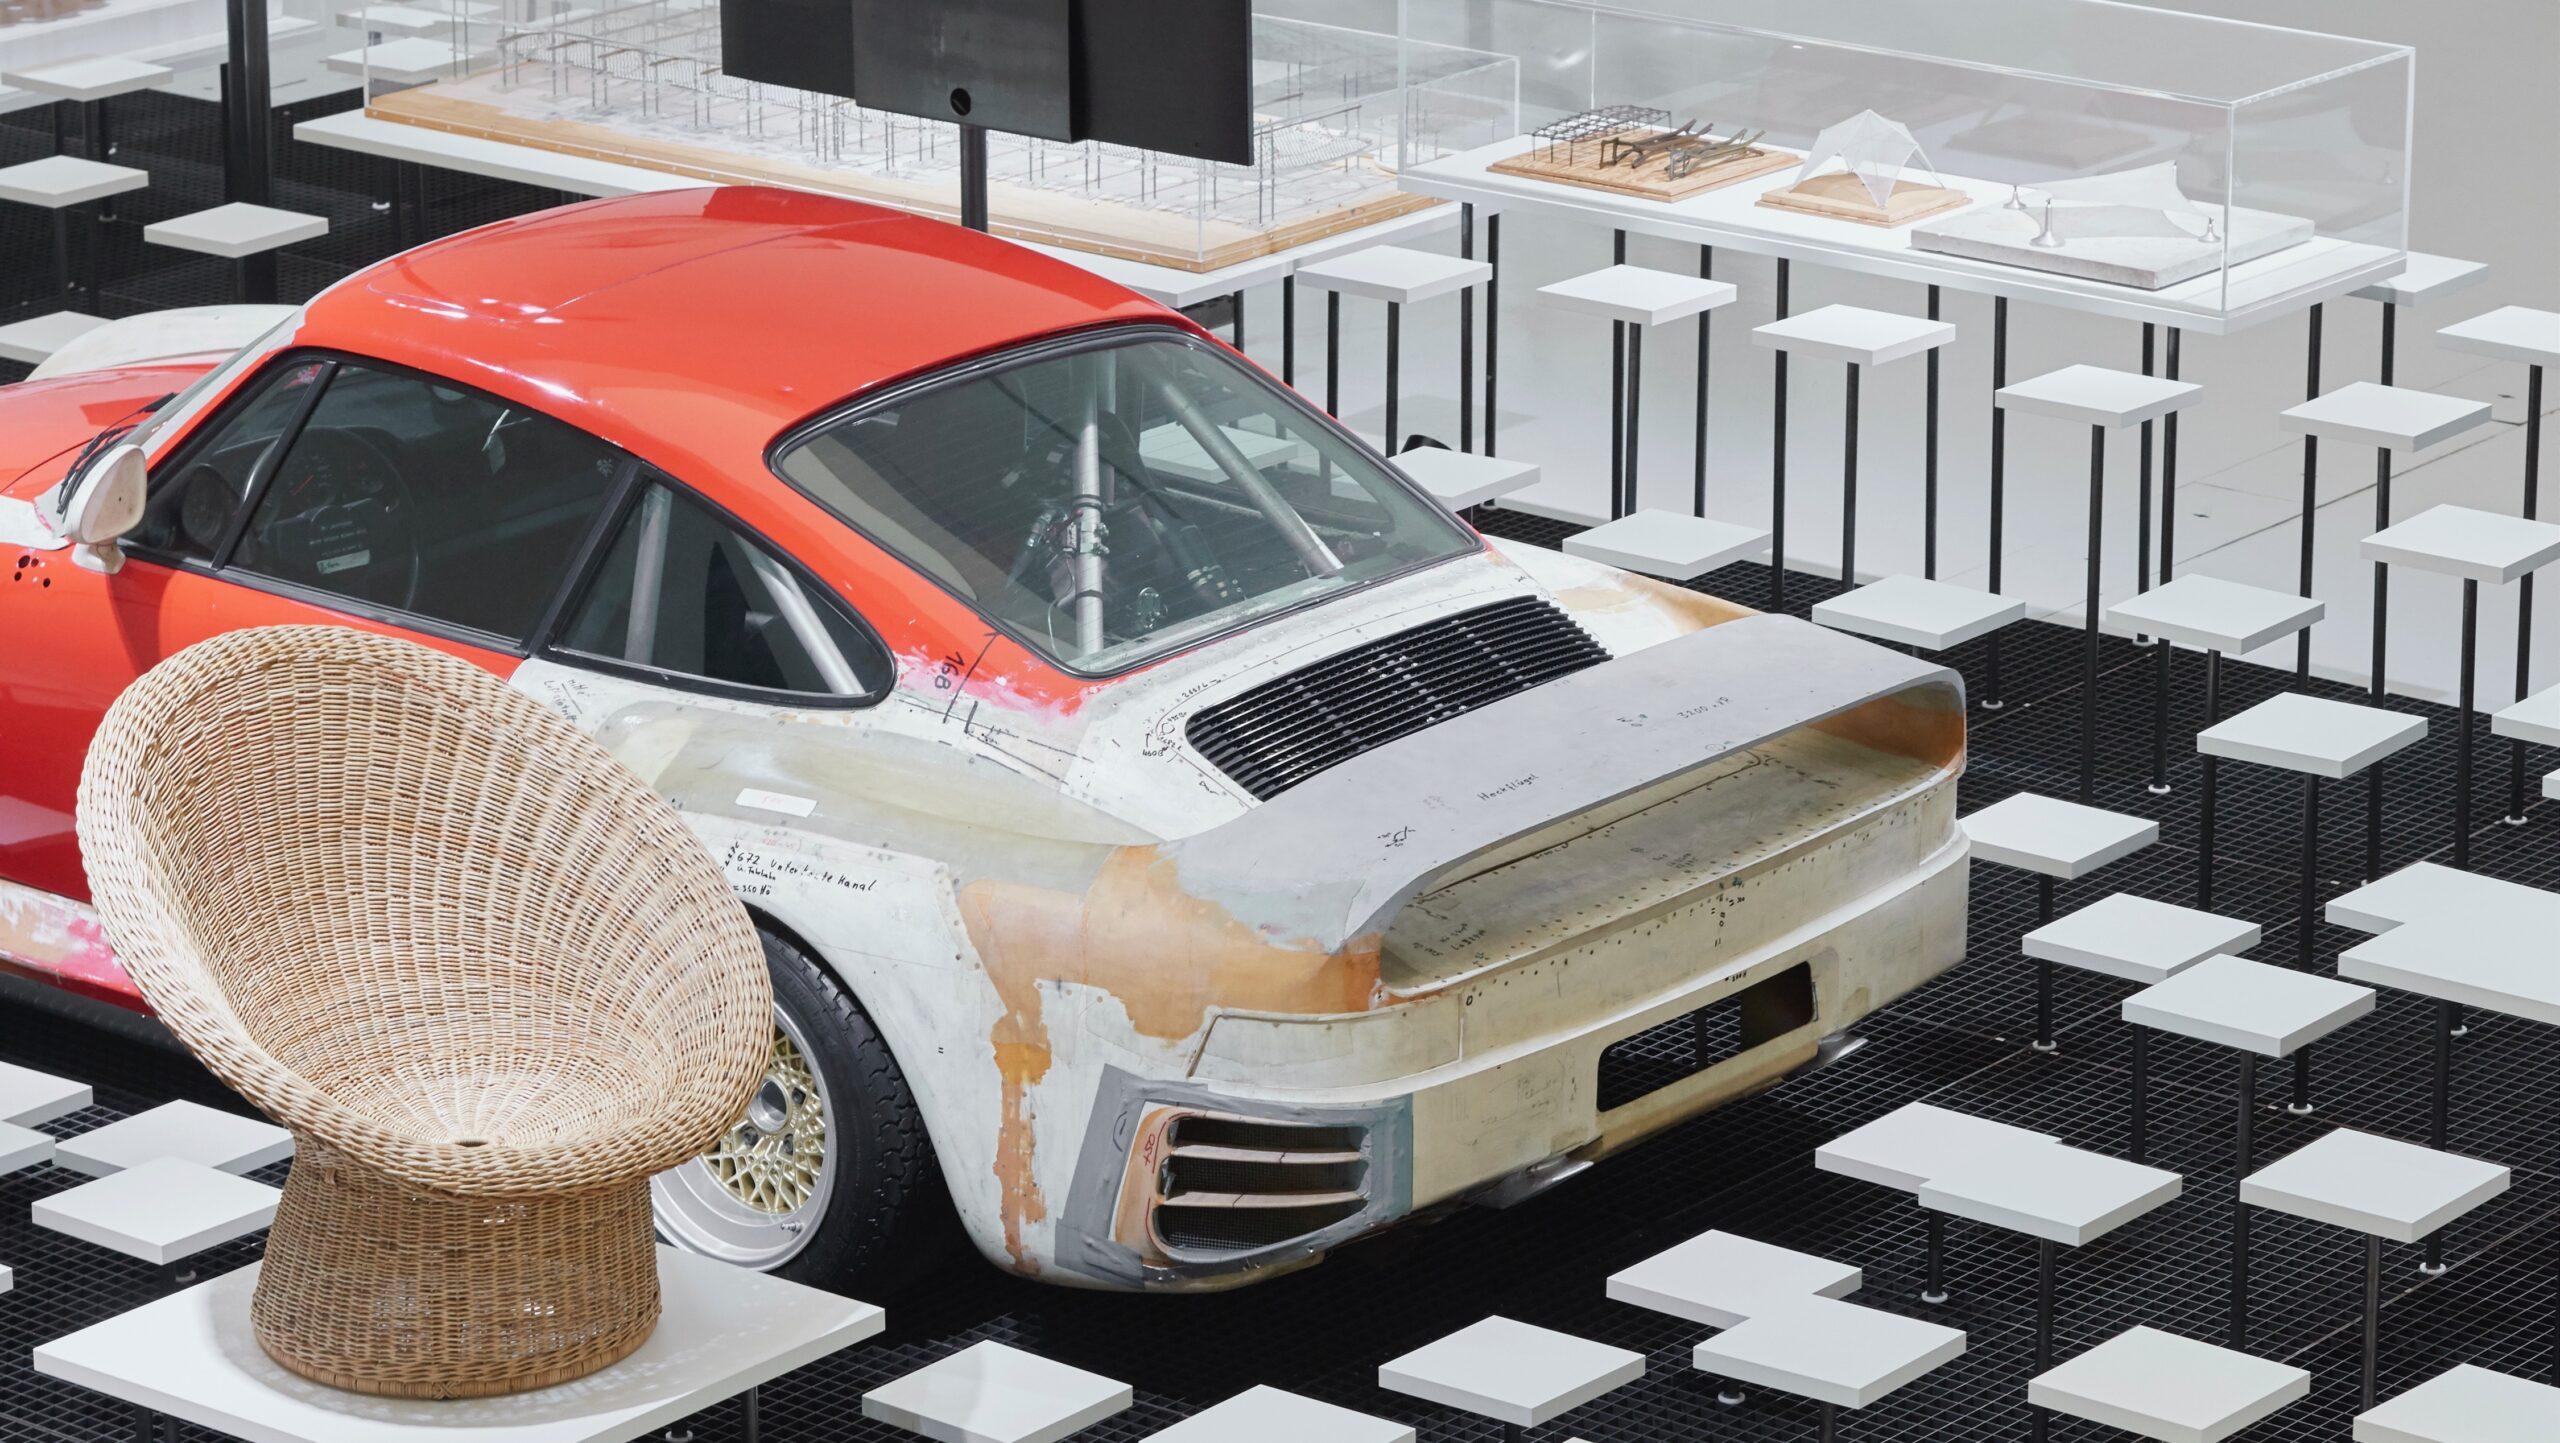 Porsche 959 development mule on display as part of an exhibition at Qatar museum